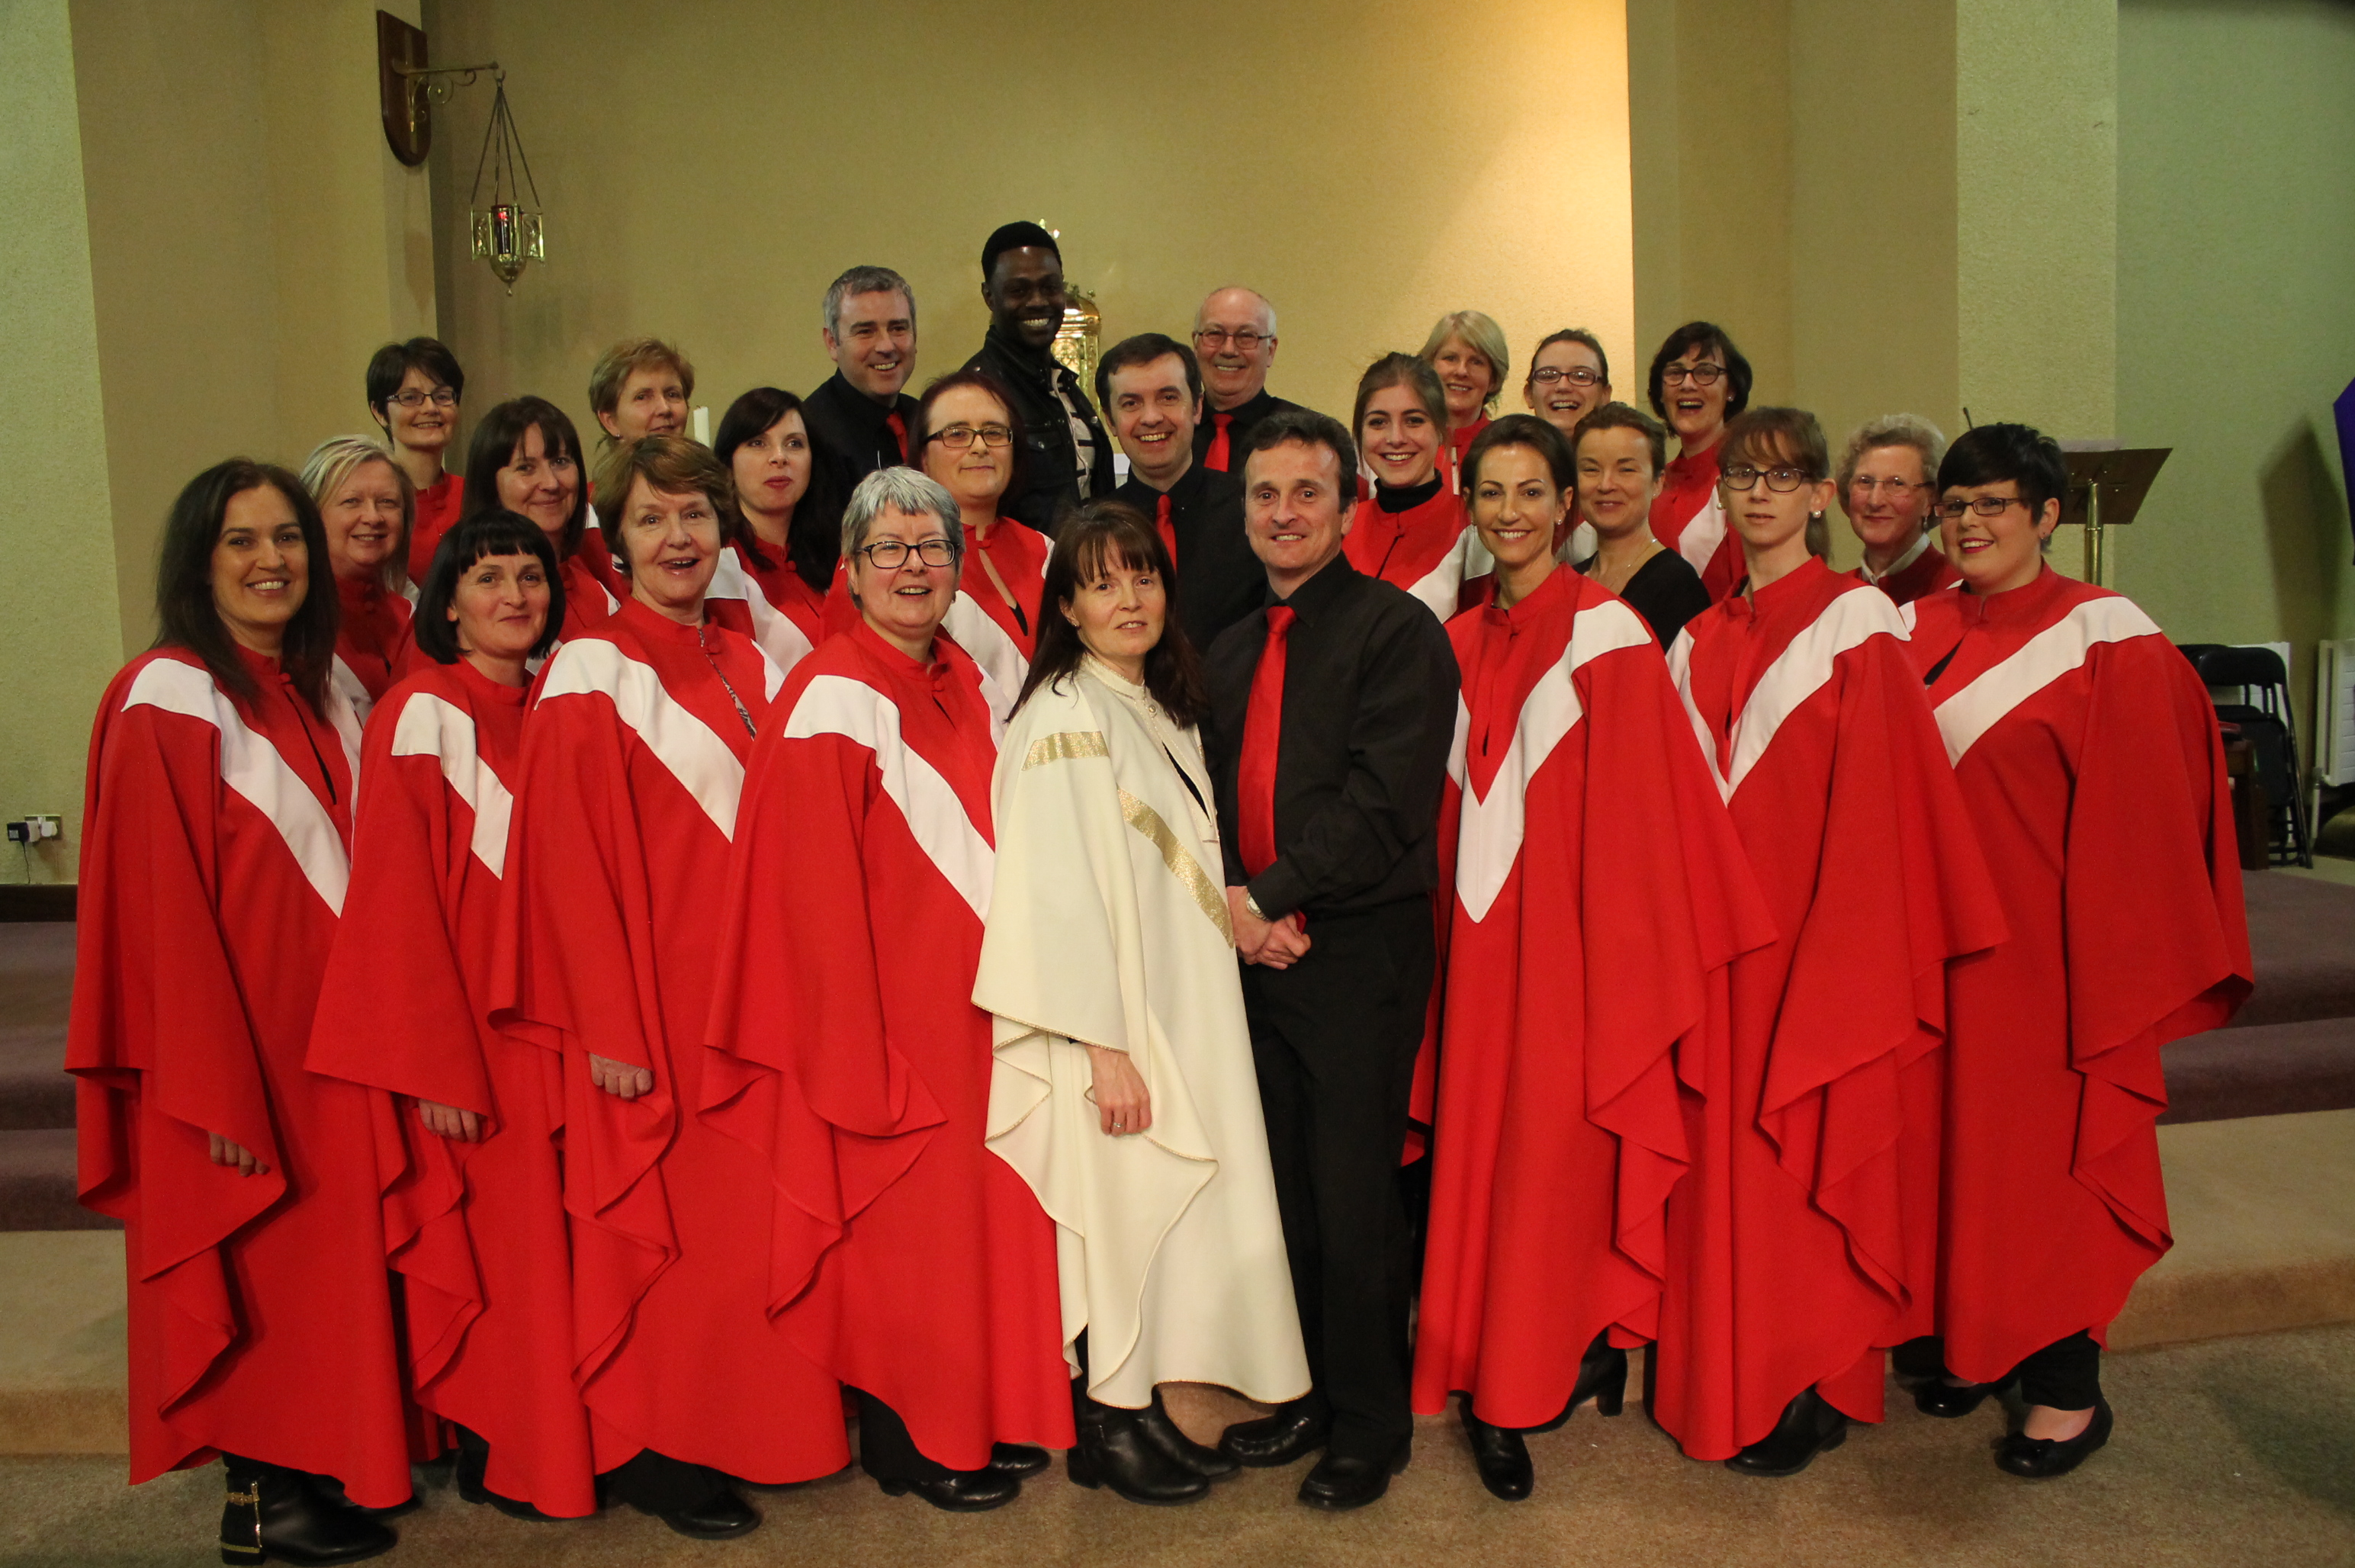 Virginia Gospel Choir